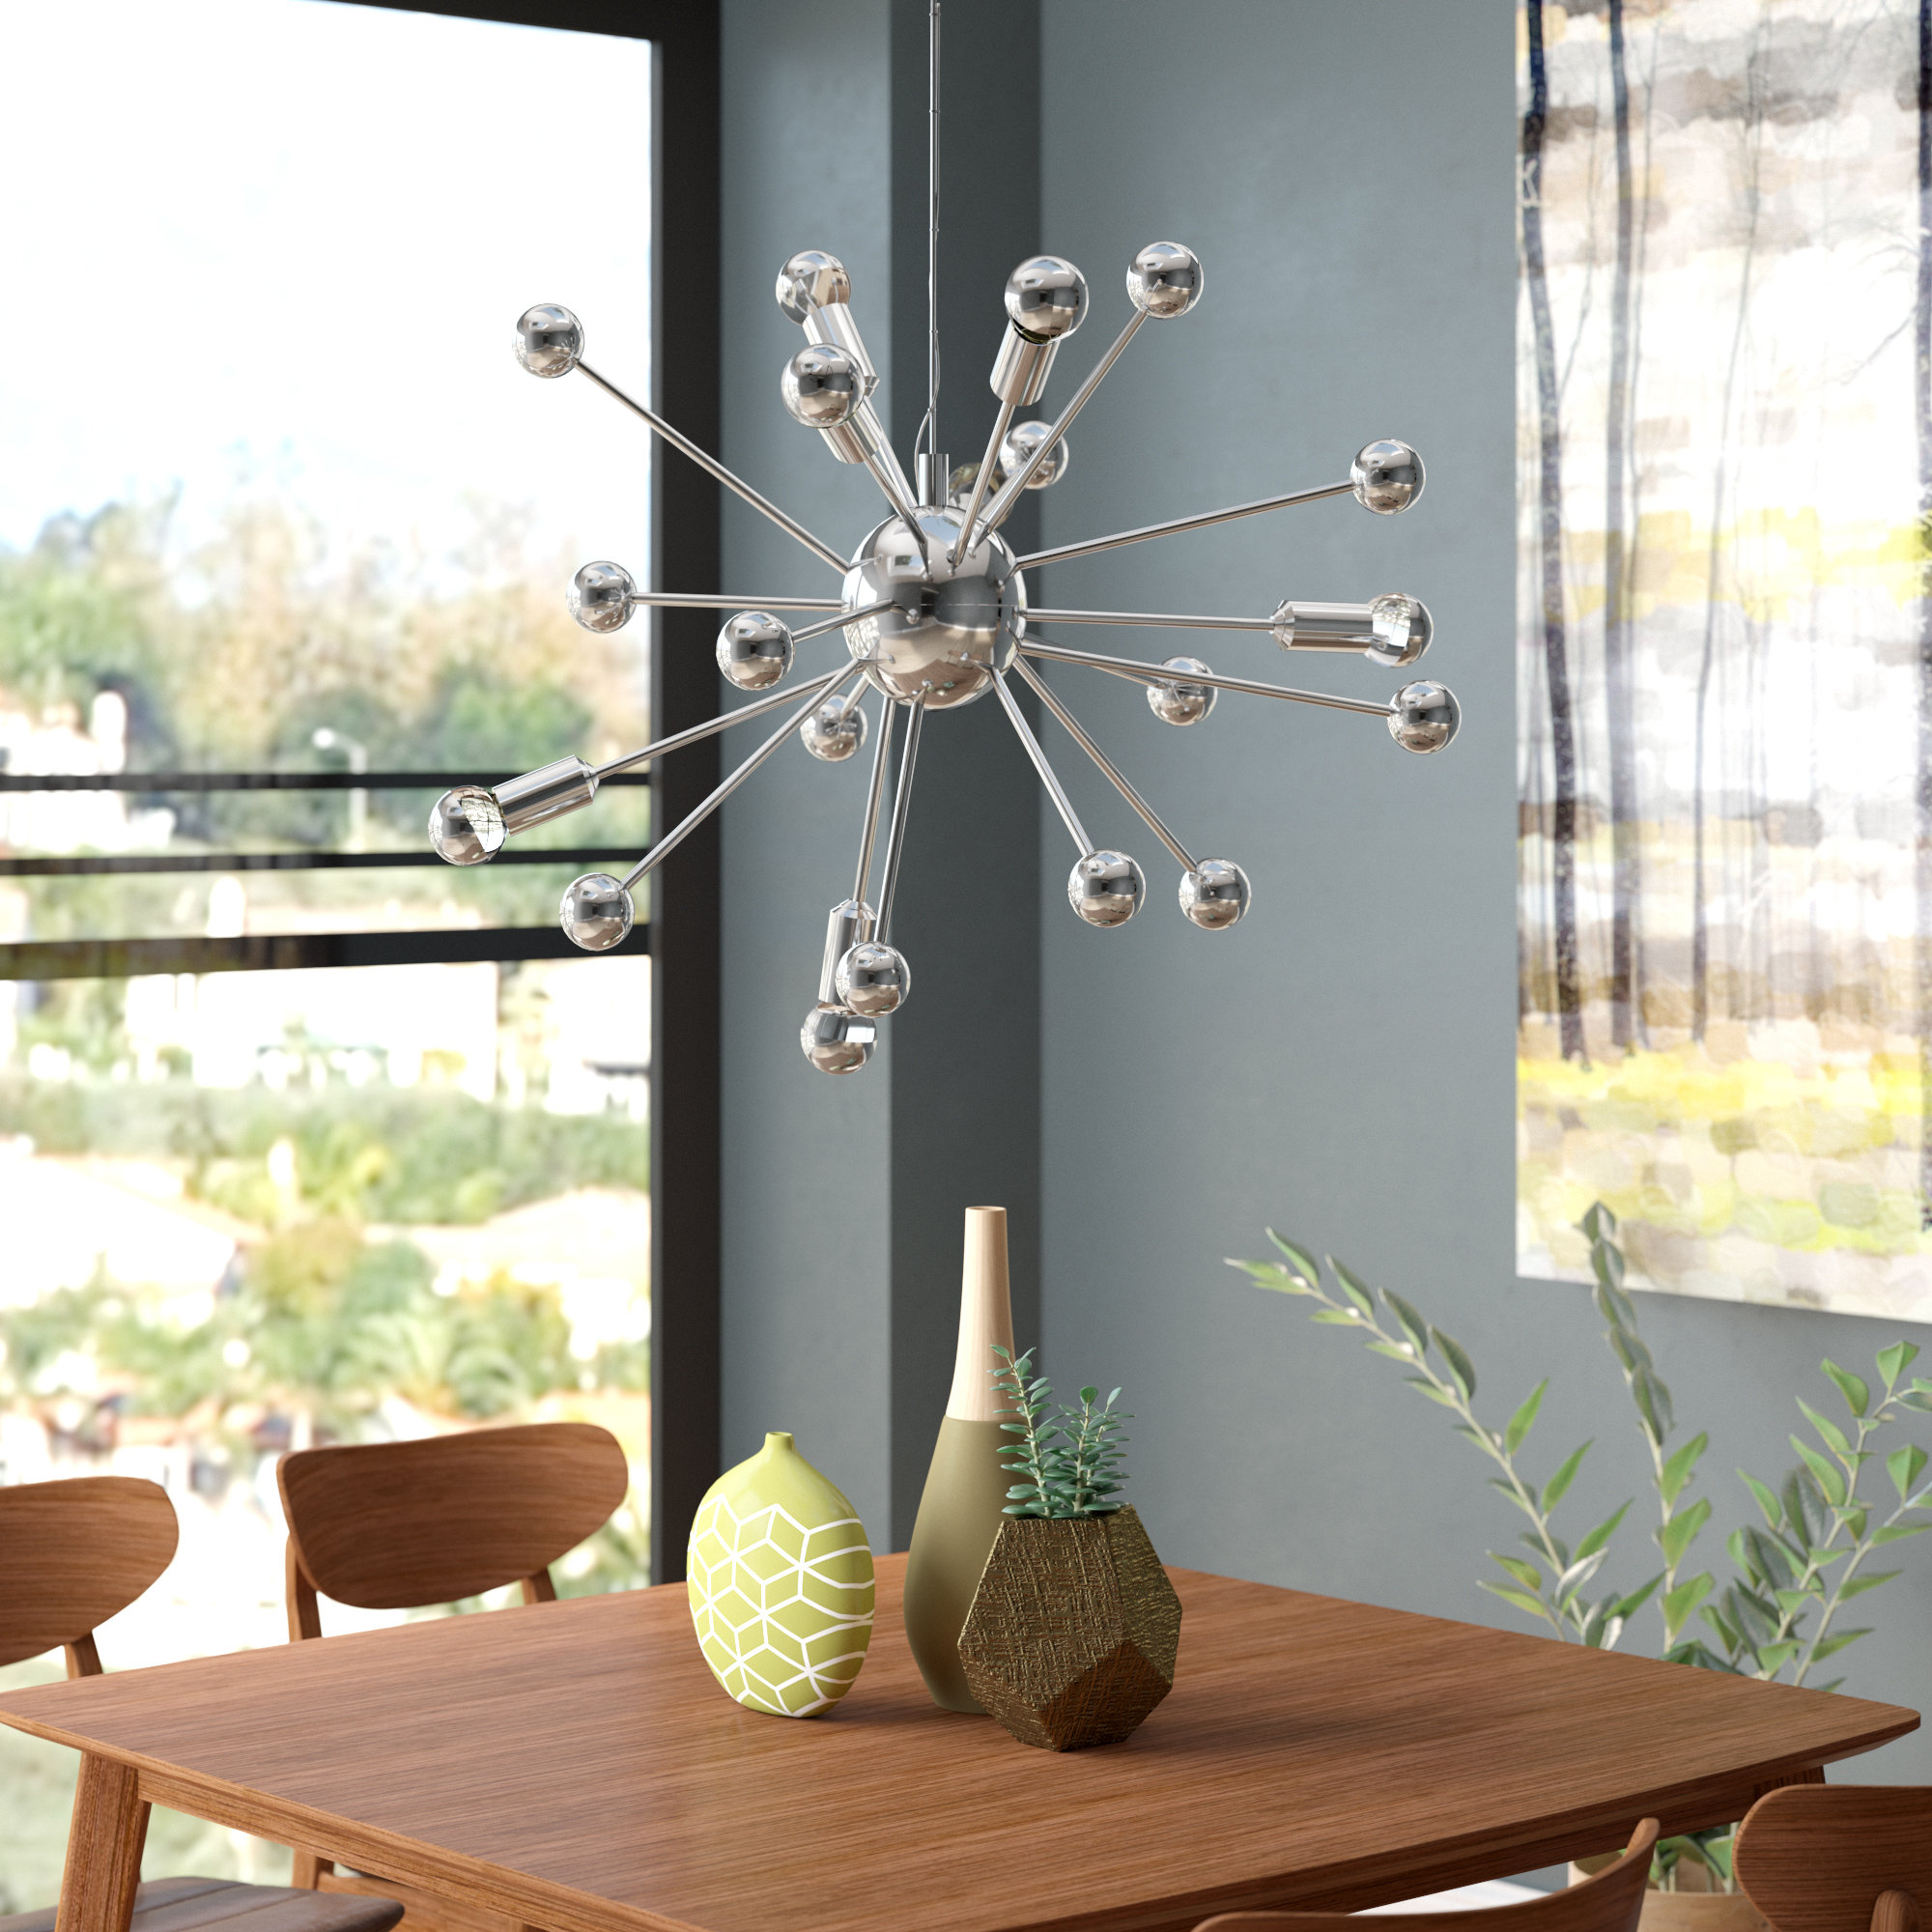 Recent Bacchus 12 Light Sputnik Chandelier With Regard To Corona 12 Light Sputnik Chandeliers (View 16 of 25)